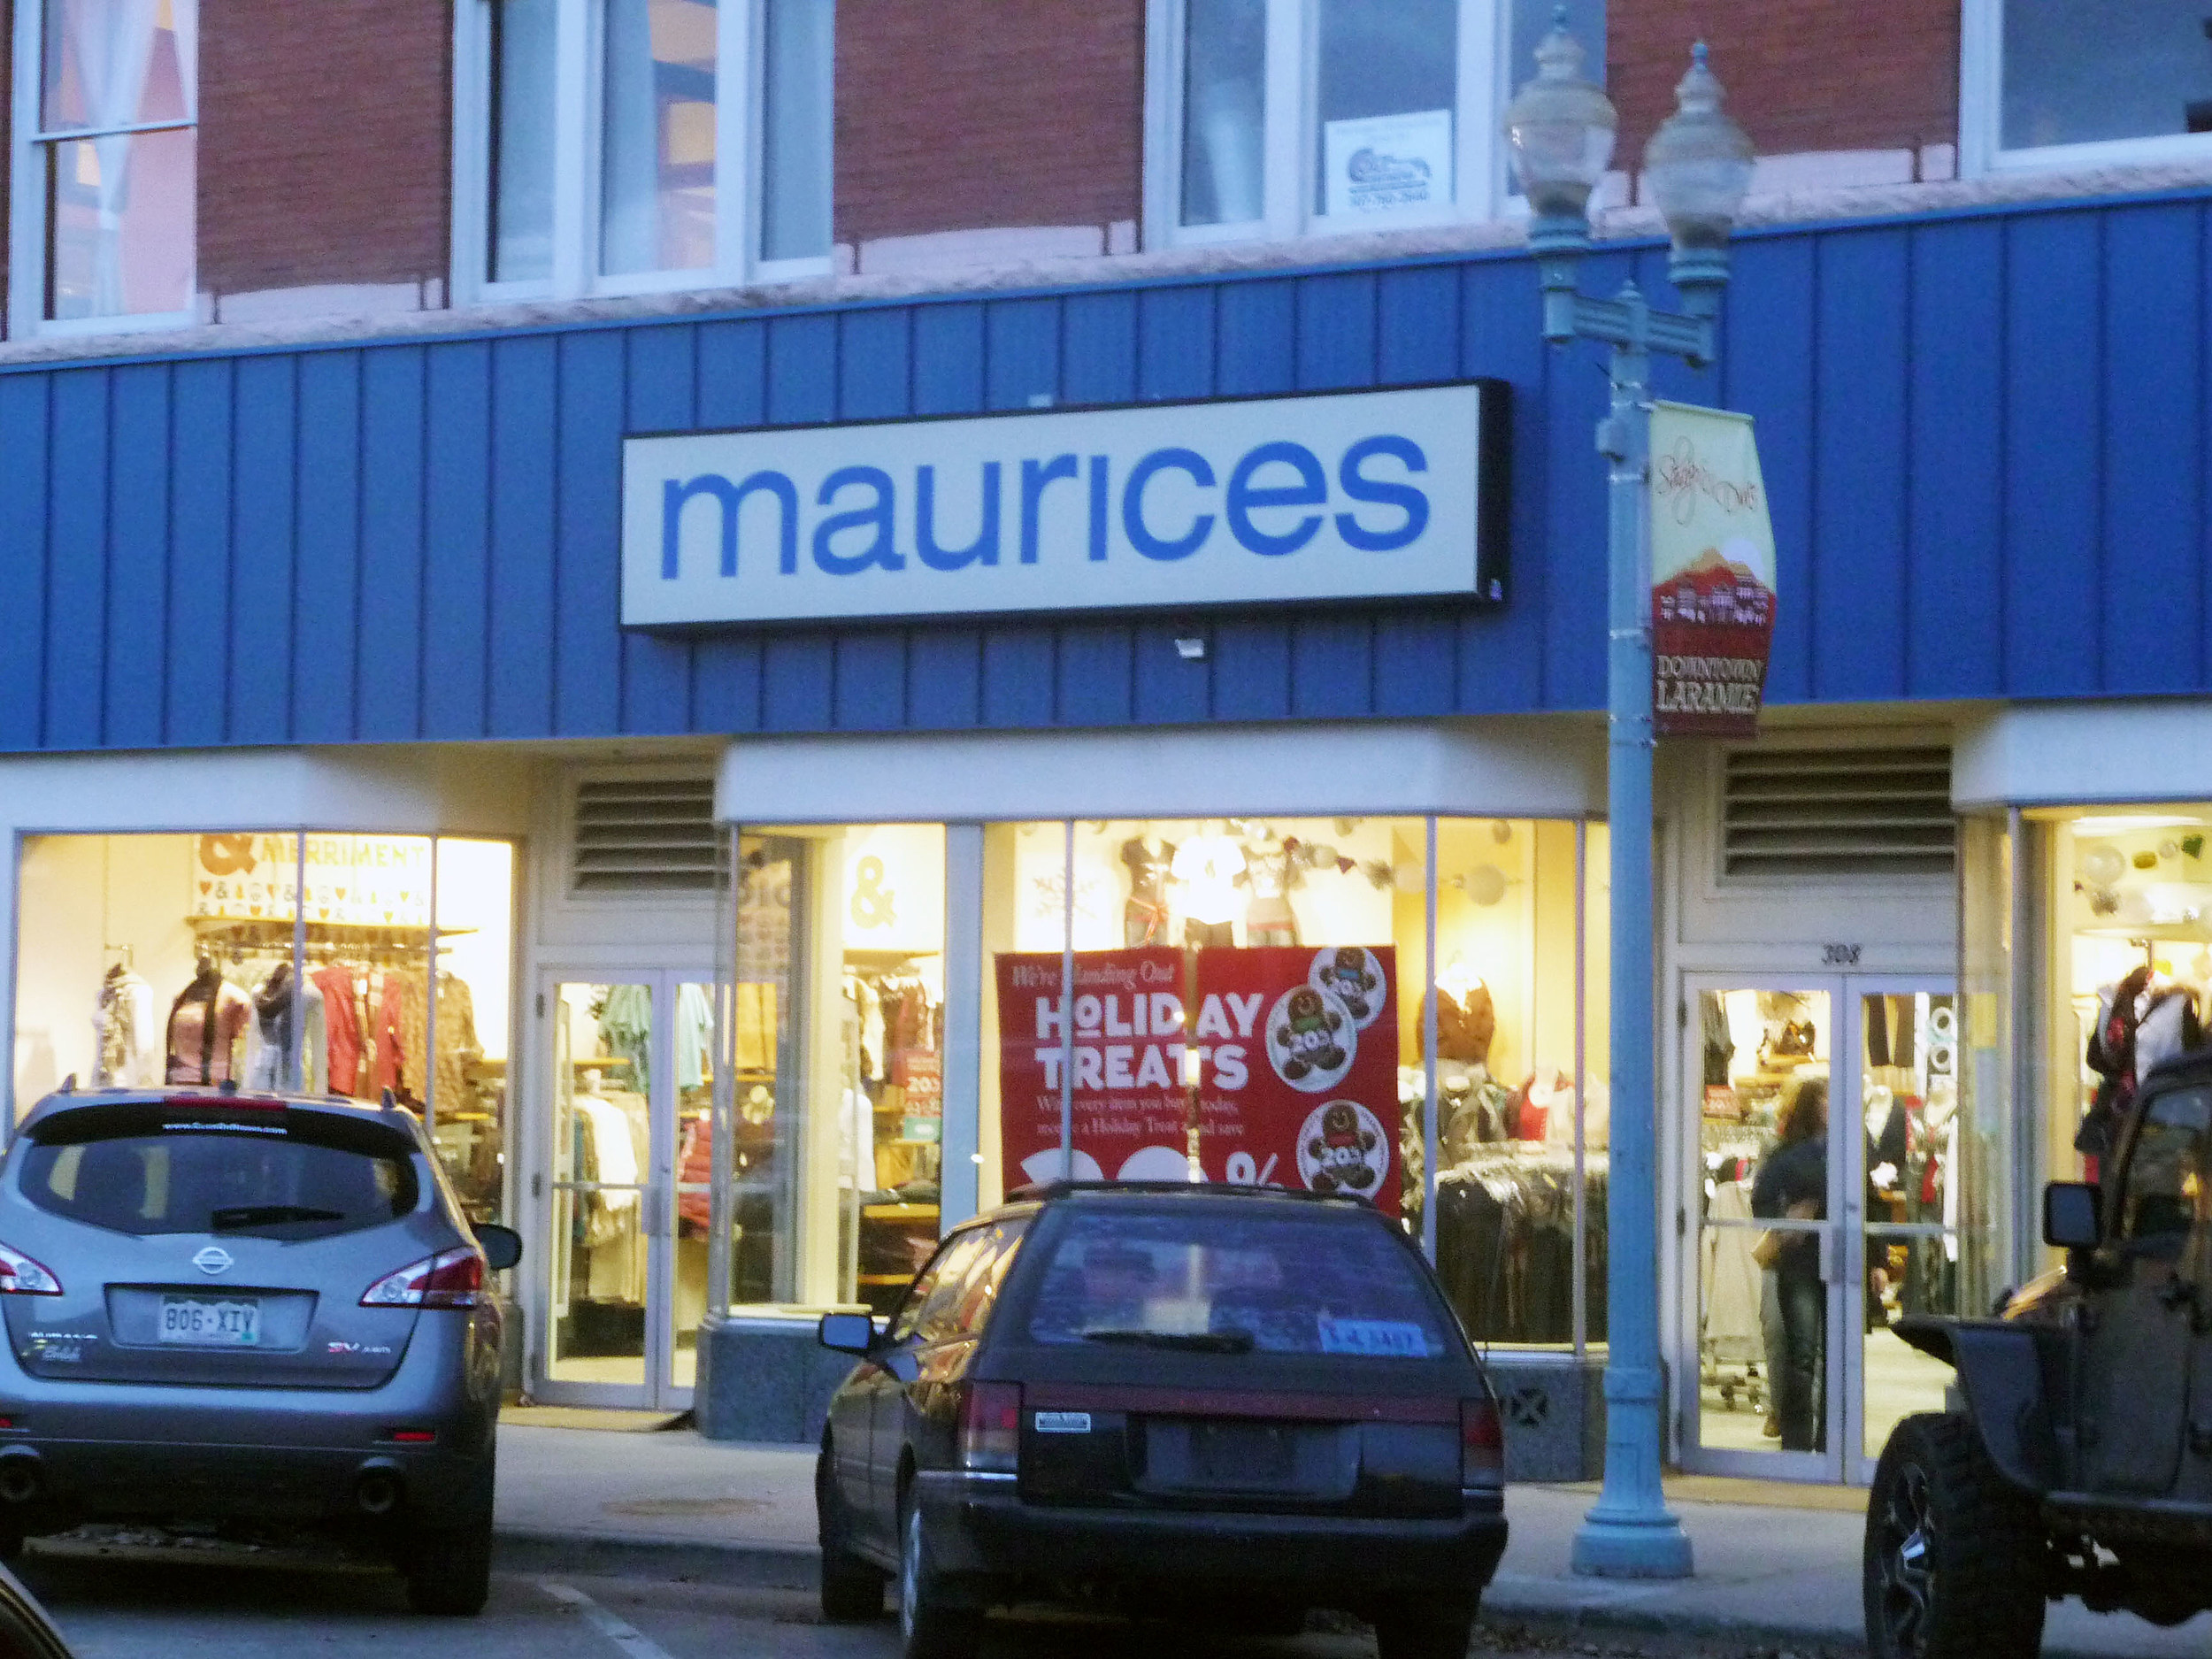 Aug 07,  · If you made a purchase at Maurices store recently, you can now go to the website utorrent-movies.ml to take part the Maurices Customer Satisfaction Survey and receive 10 chances to win $1, daily. PLUS you could instantly win other great prizes valued at $1, weekly.